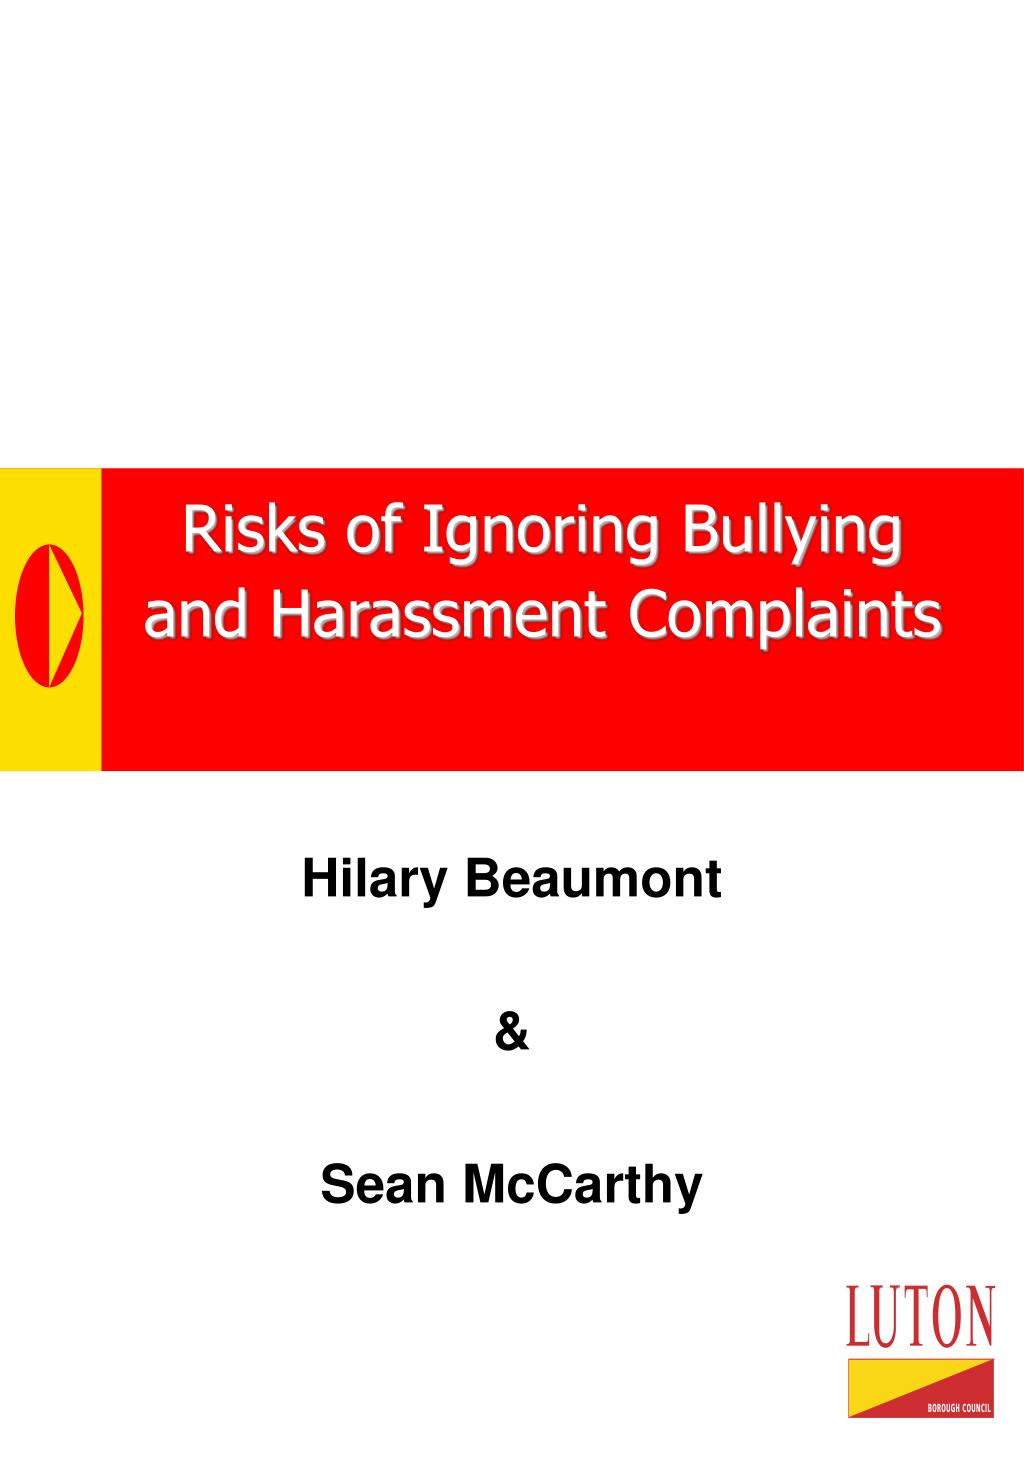 Risks of Ignoring Bullying and Harassment